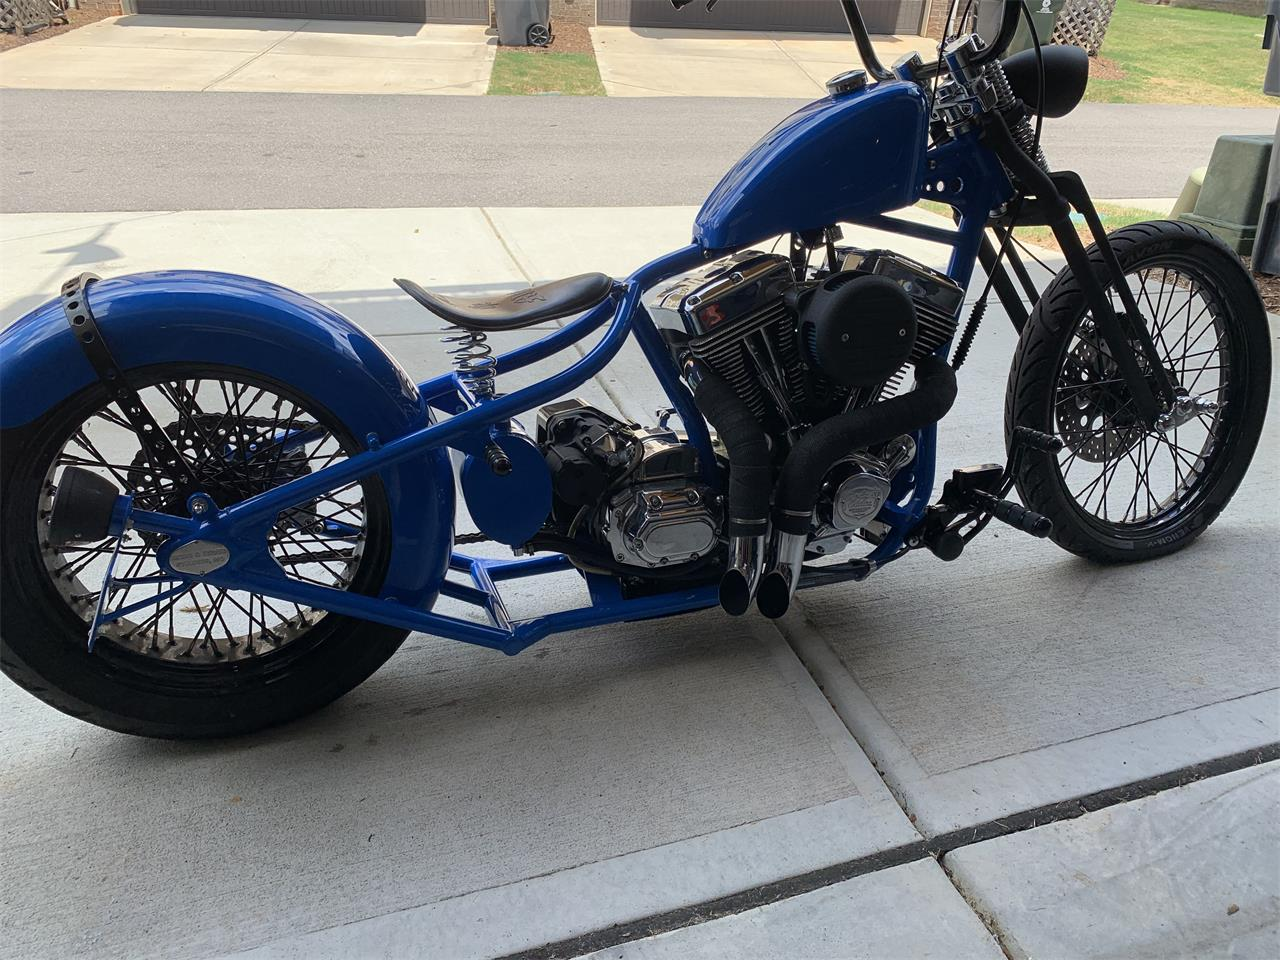 2016 Custom Motorcycle for sale in Apex, NC – photo 5